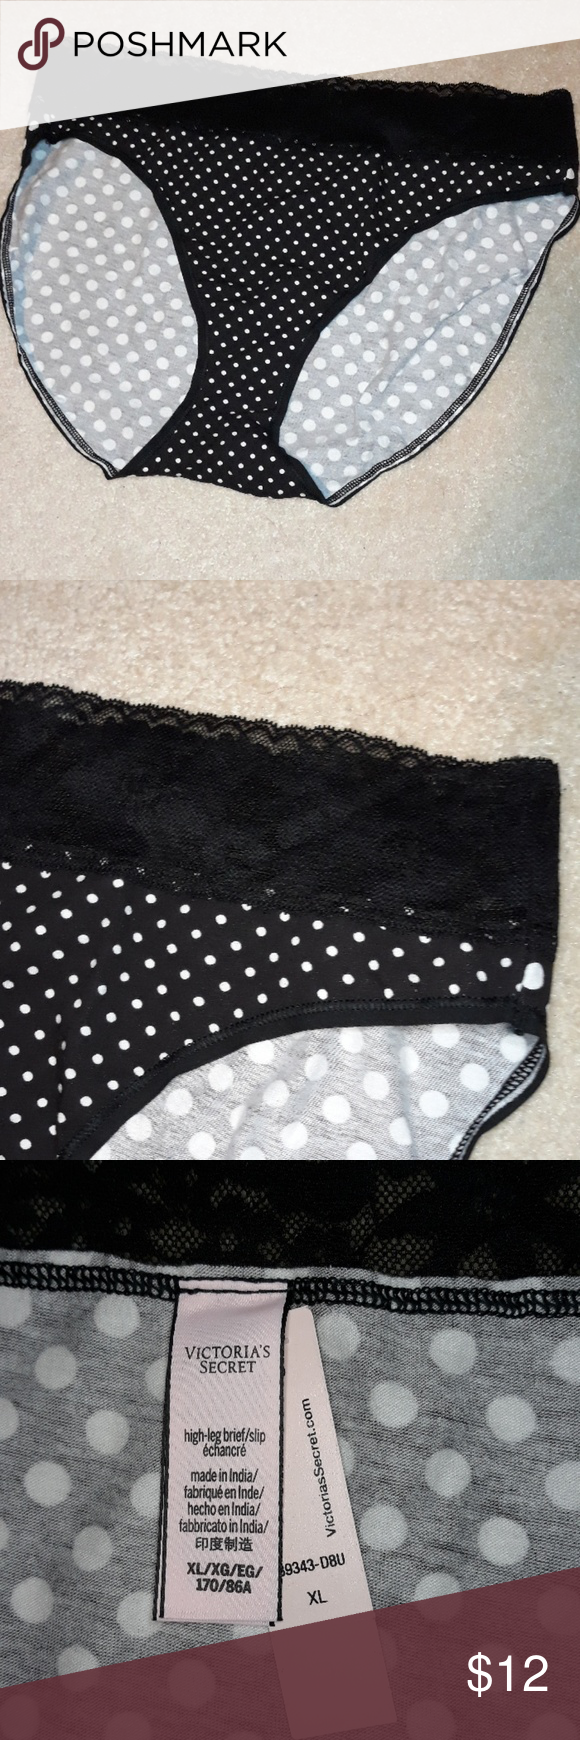 49c4ab24aea3 Brand new Victoria's Secret underwear extra large Brand new with tags Victoria  Secret black and white polka dot black lace waste Cotton. Sexy. Cool.